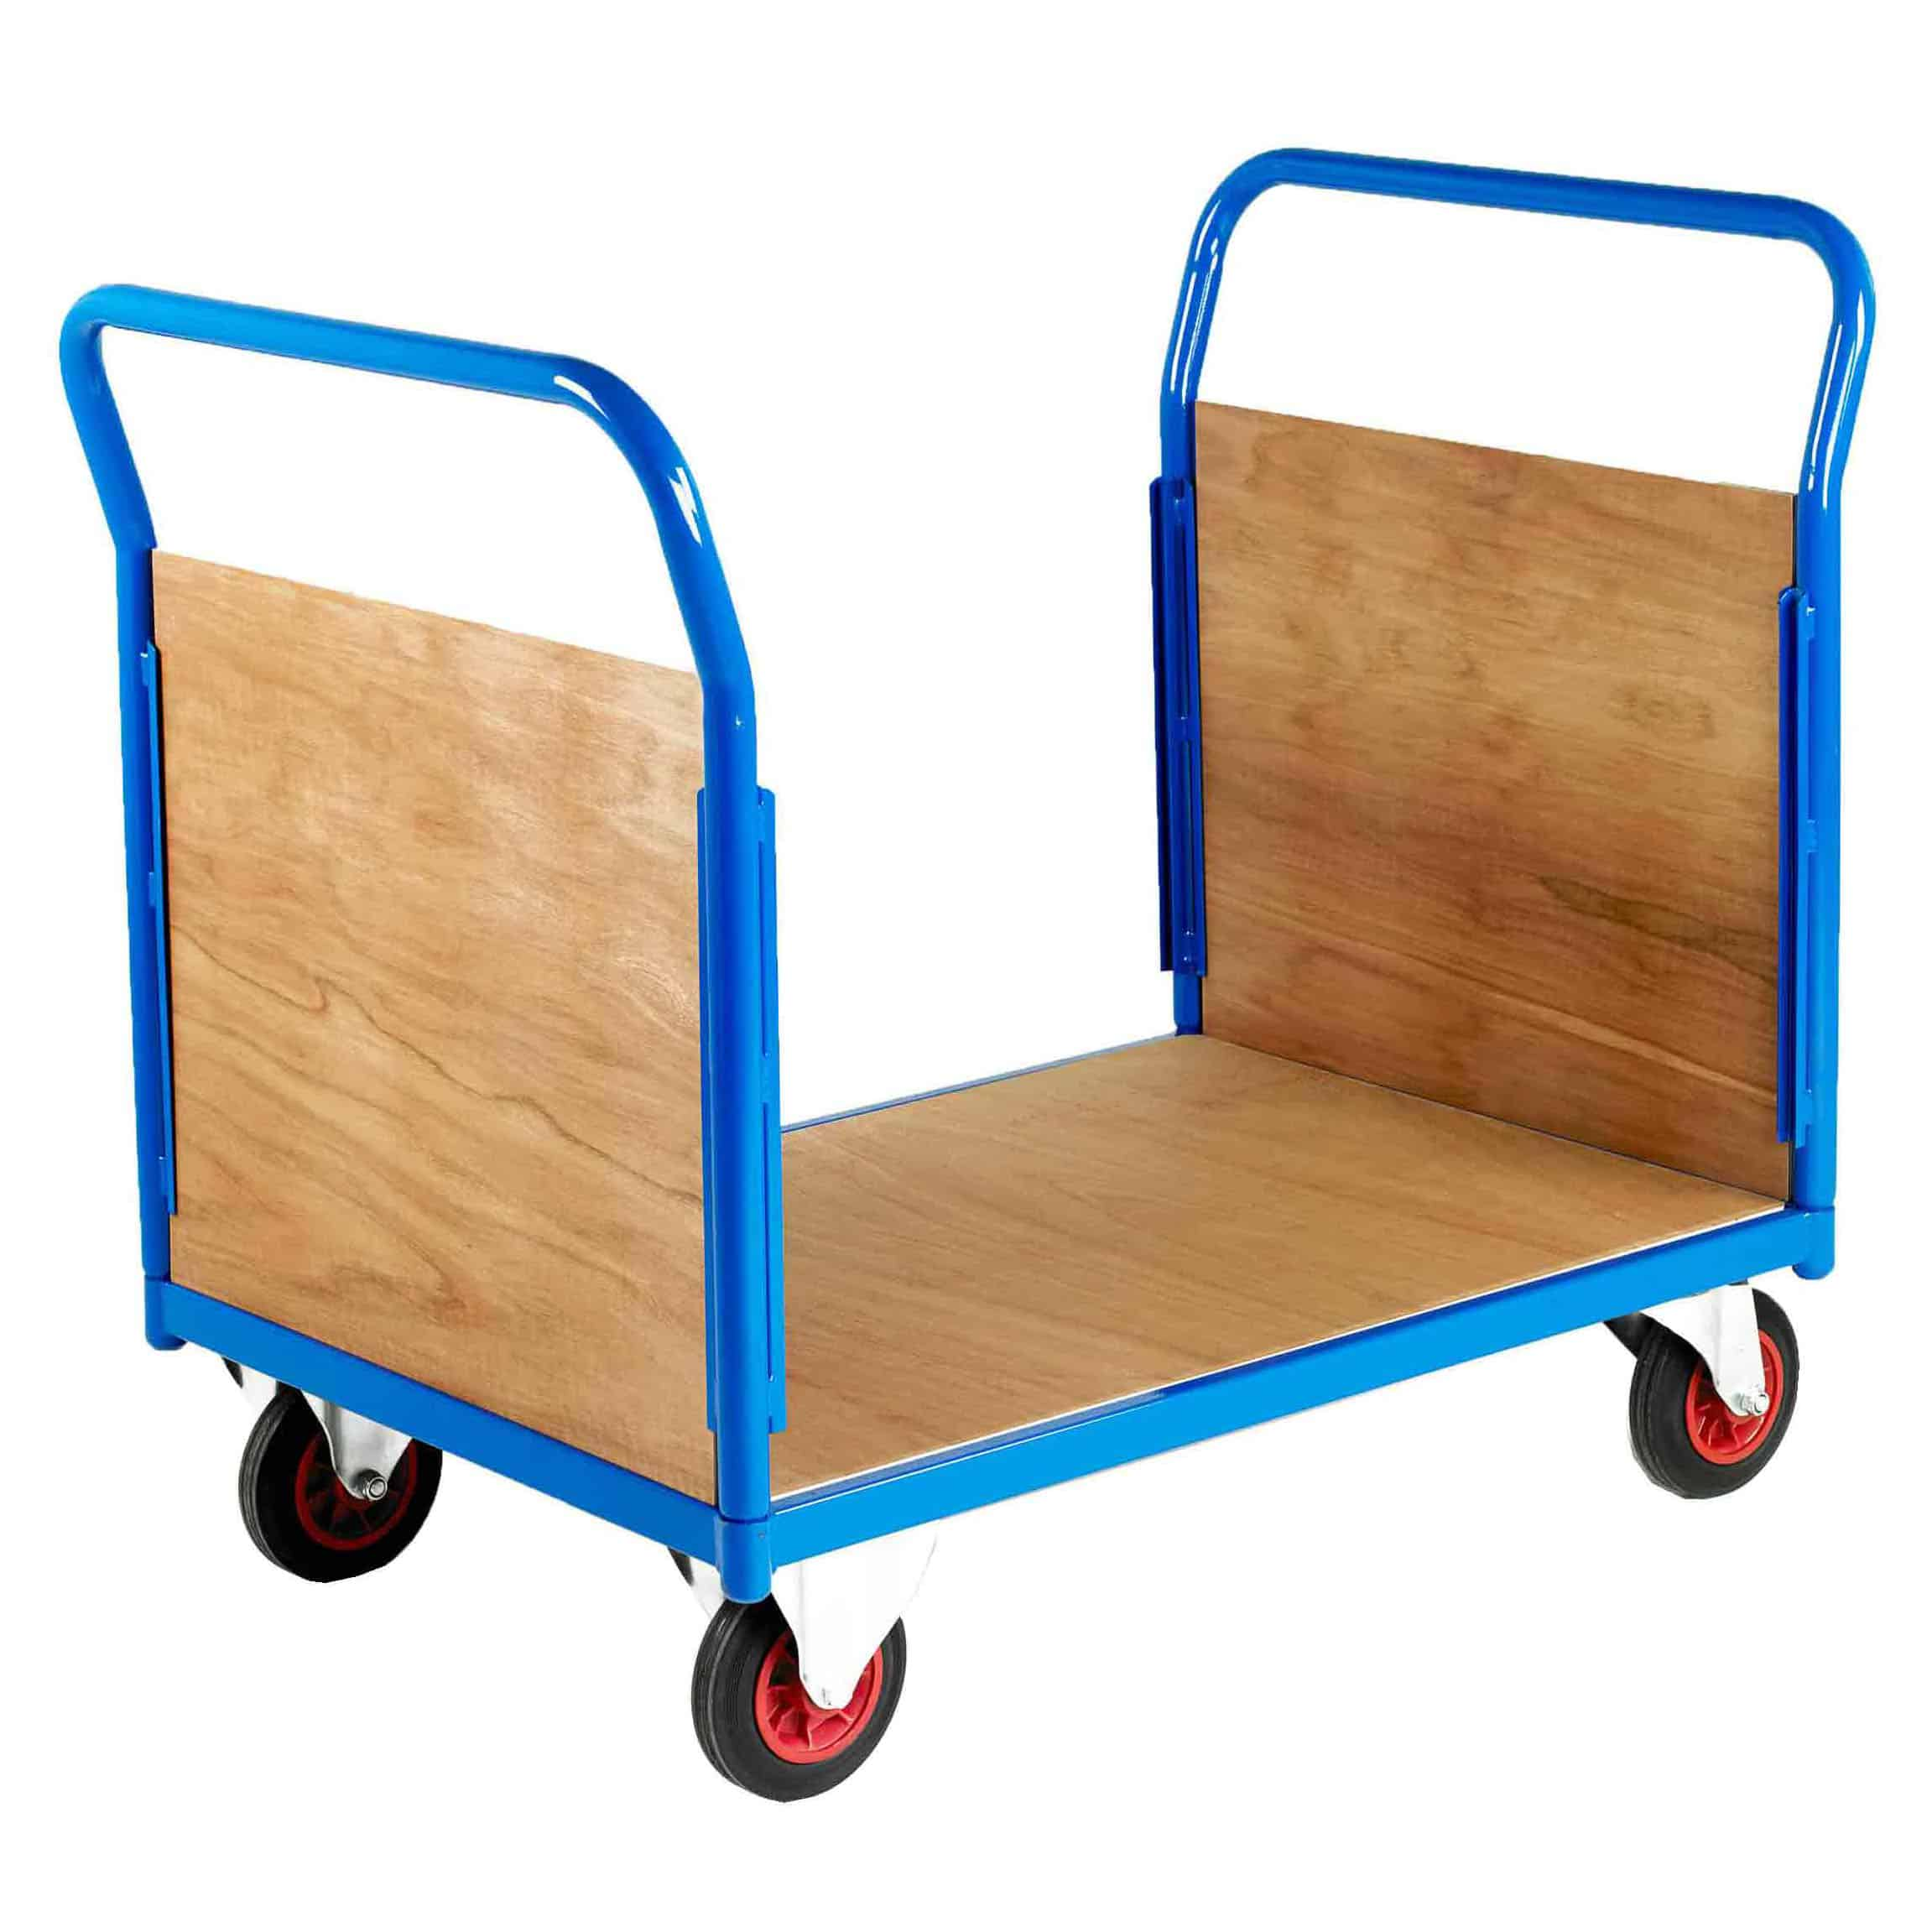 500 Double End Timber Platform Trolleys